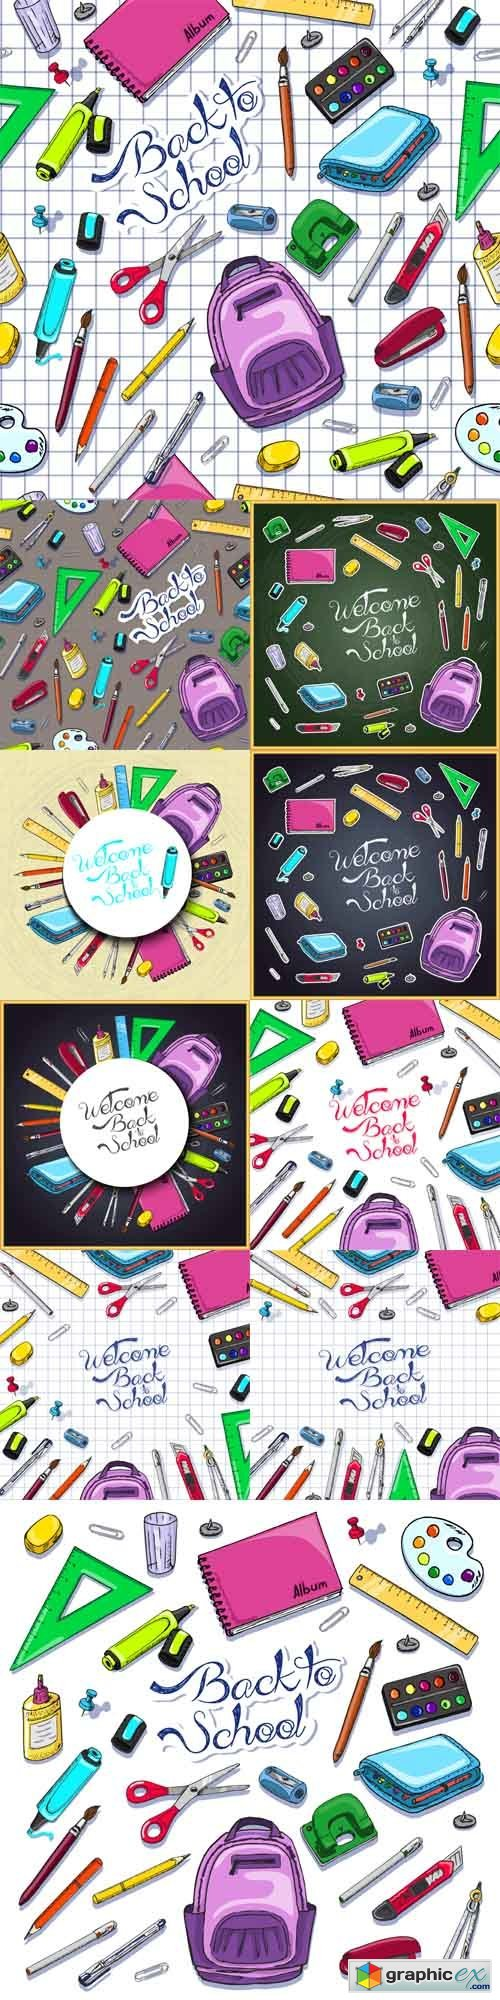 Illustrations of Back to School Supplies